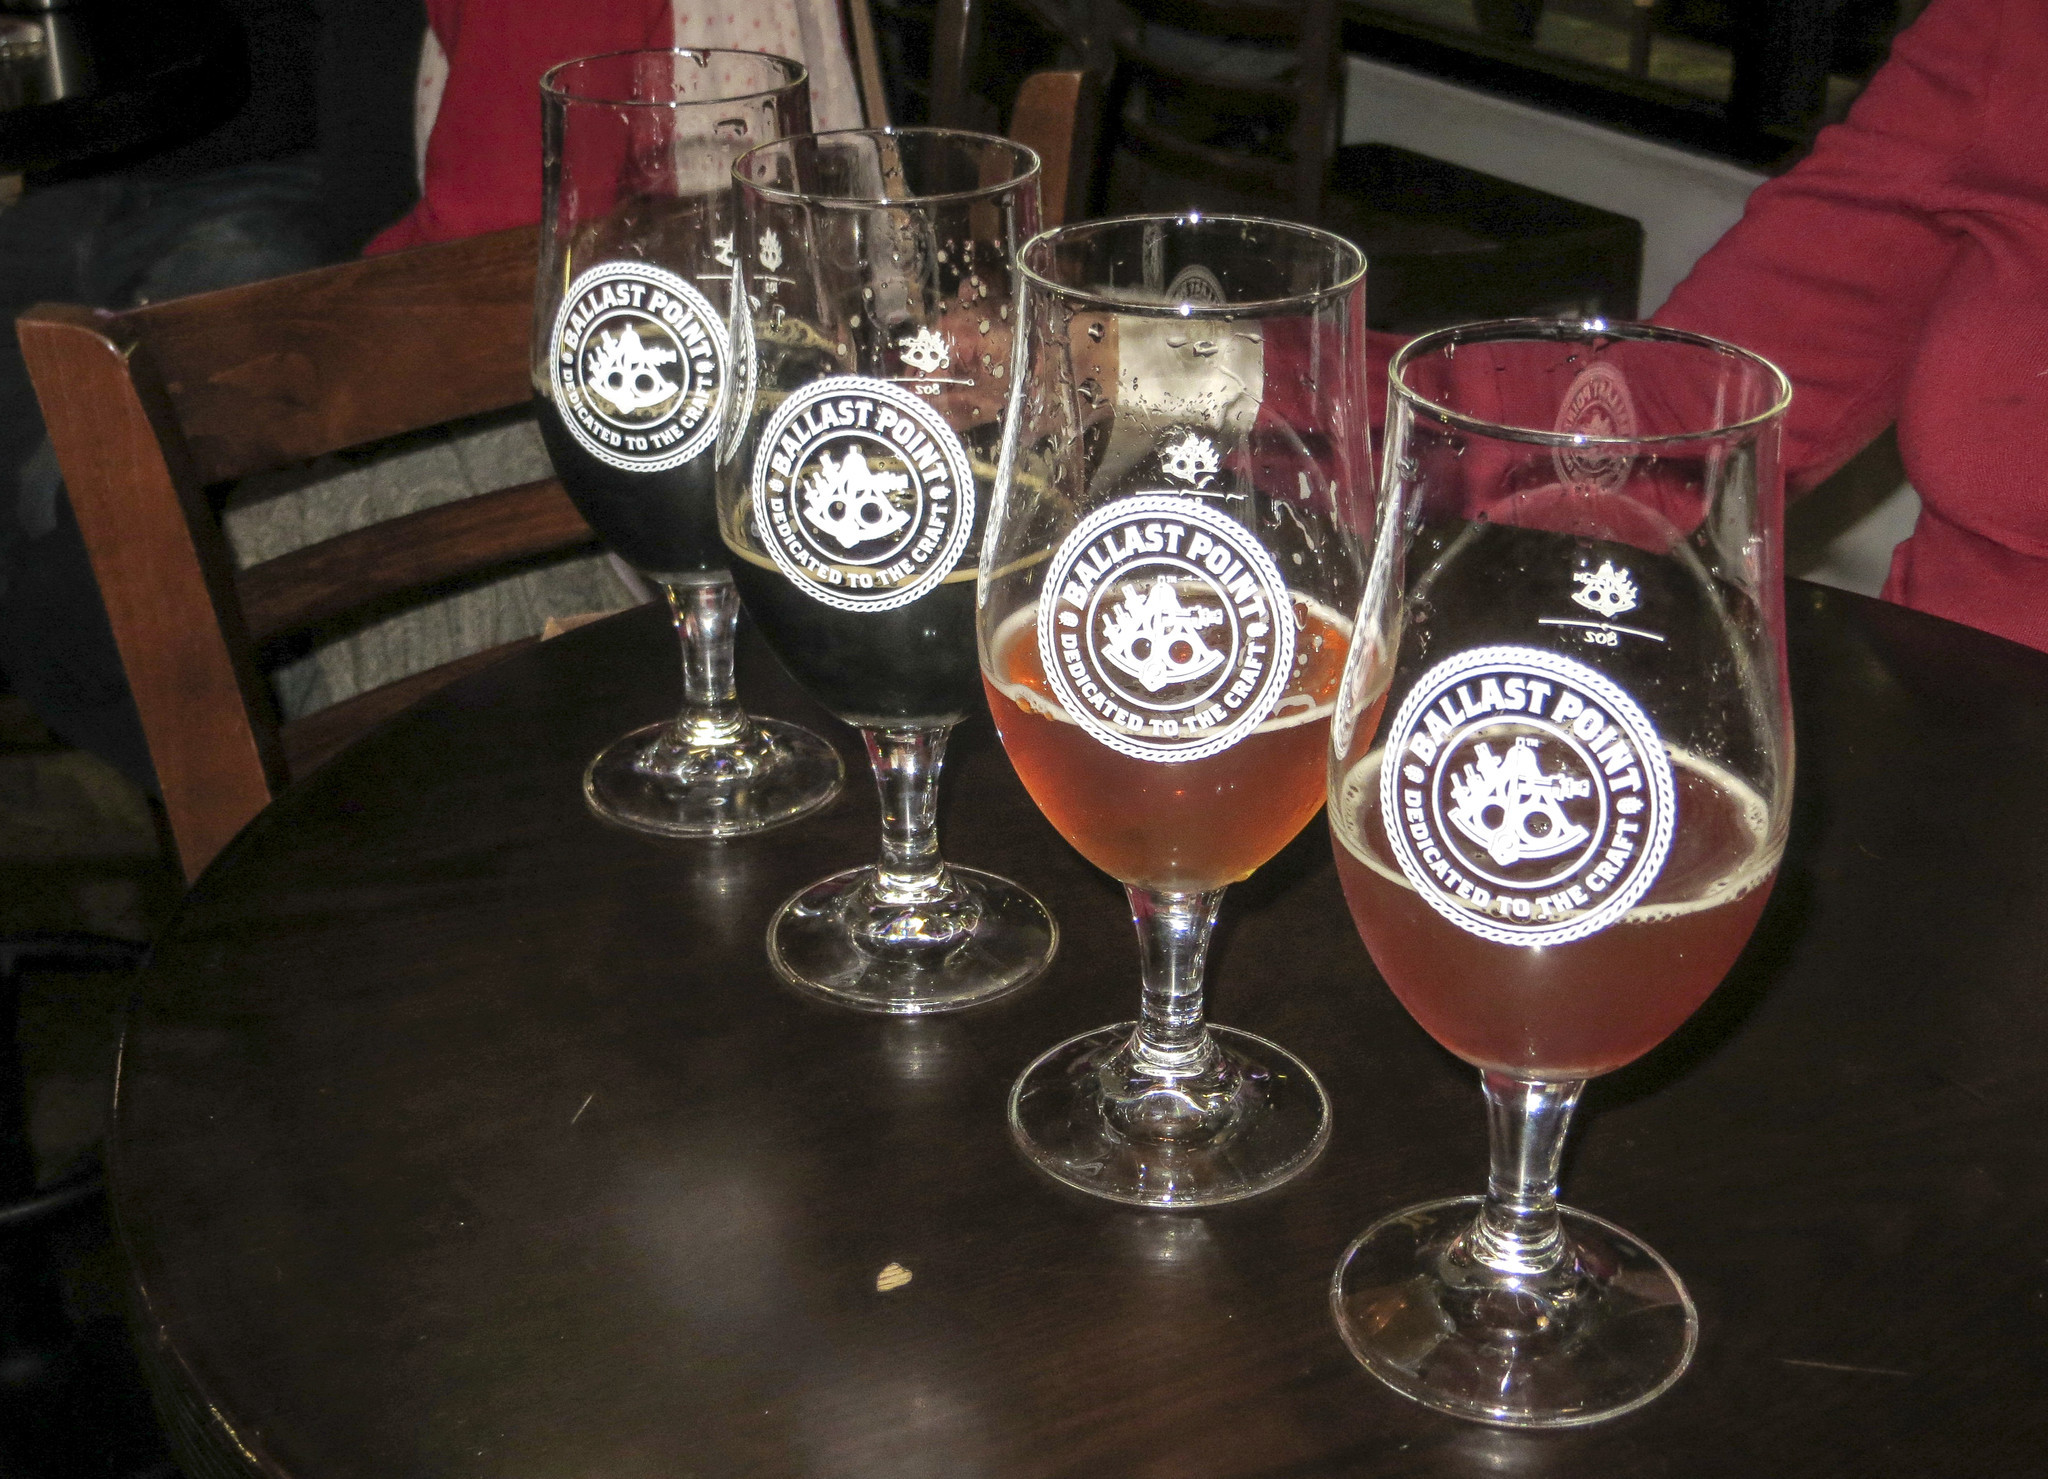 Tasters at Ballast Point Brewing in Little Italy.